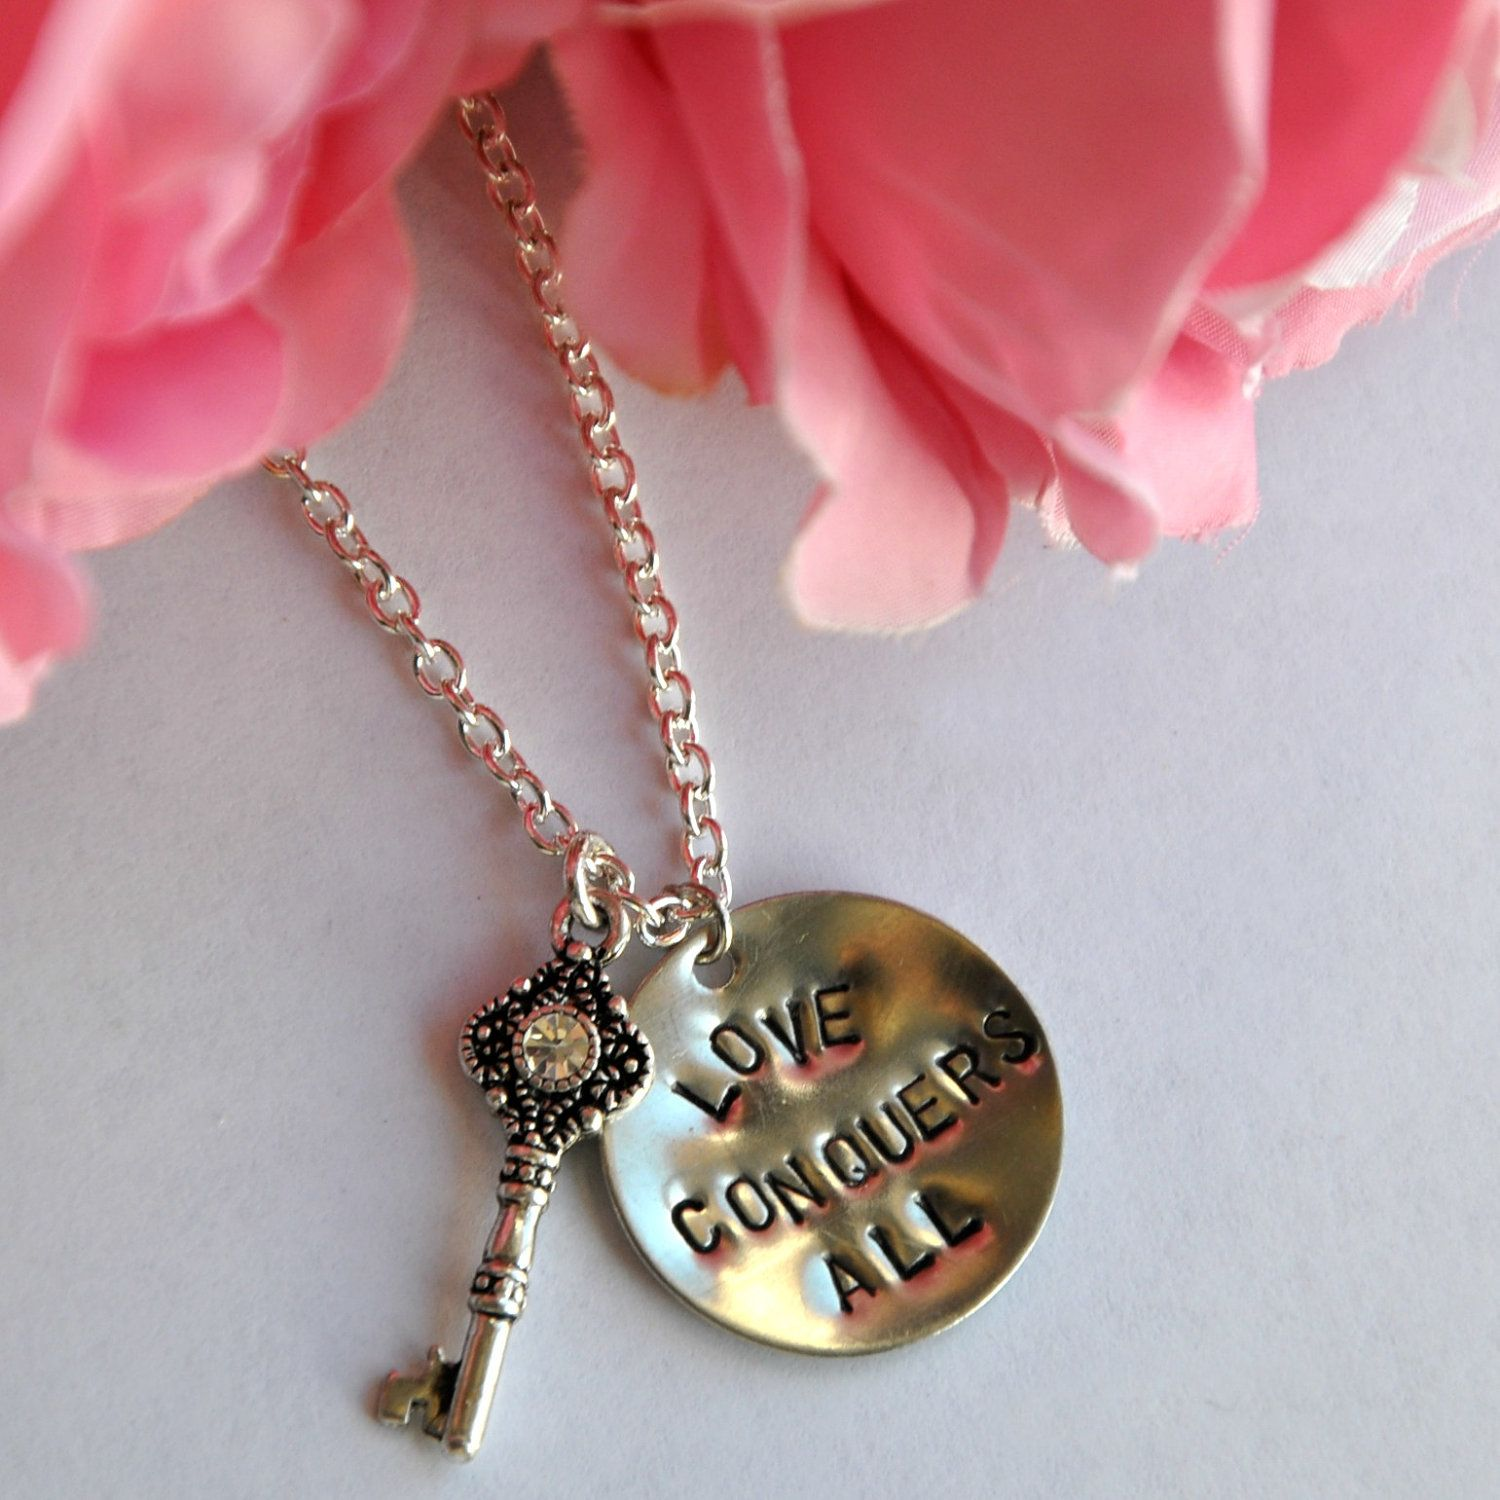 Hand Stamped Necklace - Love Conquers All - Skeleton Key - Nickel Silver Personalized Jewelry. $16.95, via Etsy.